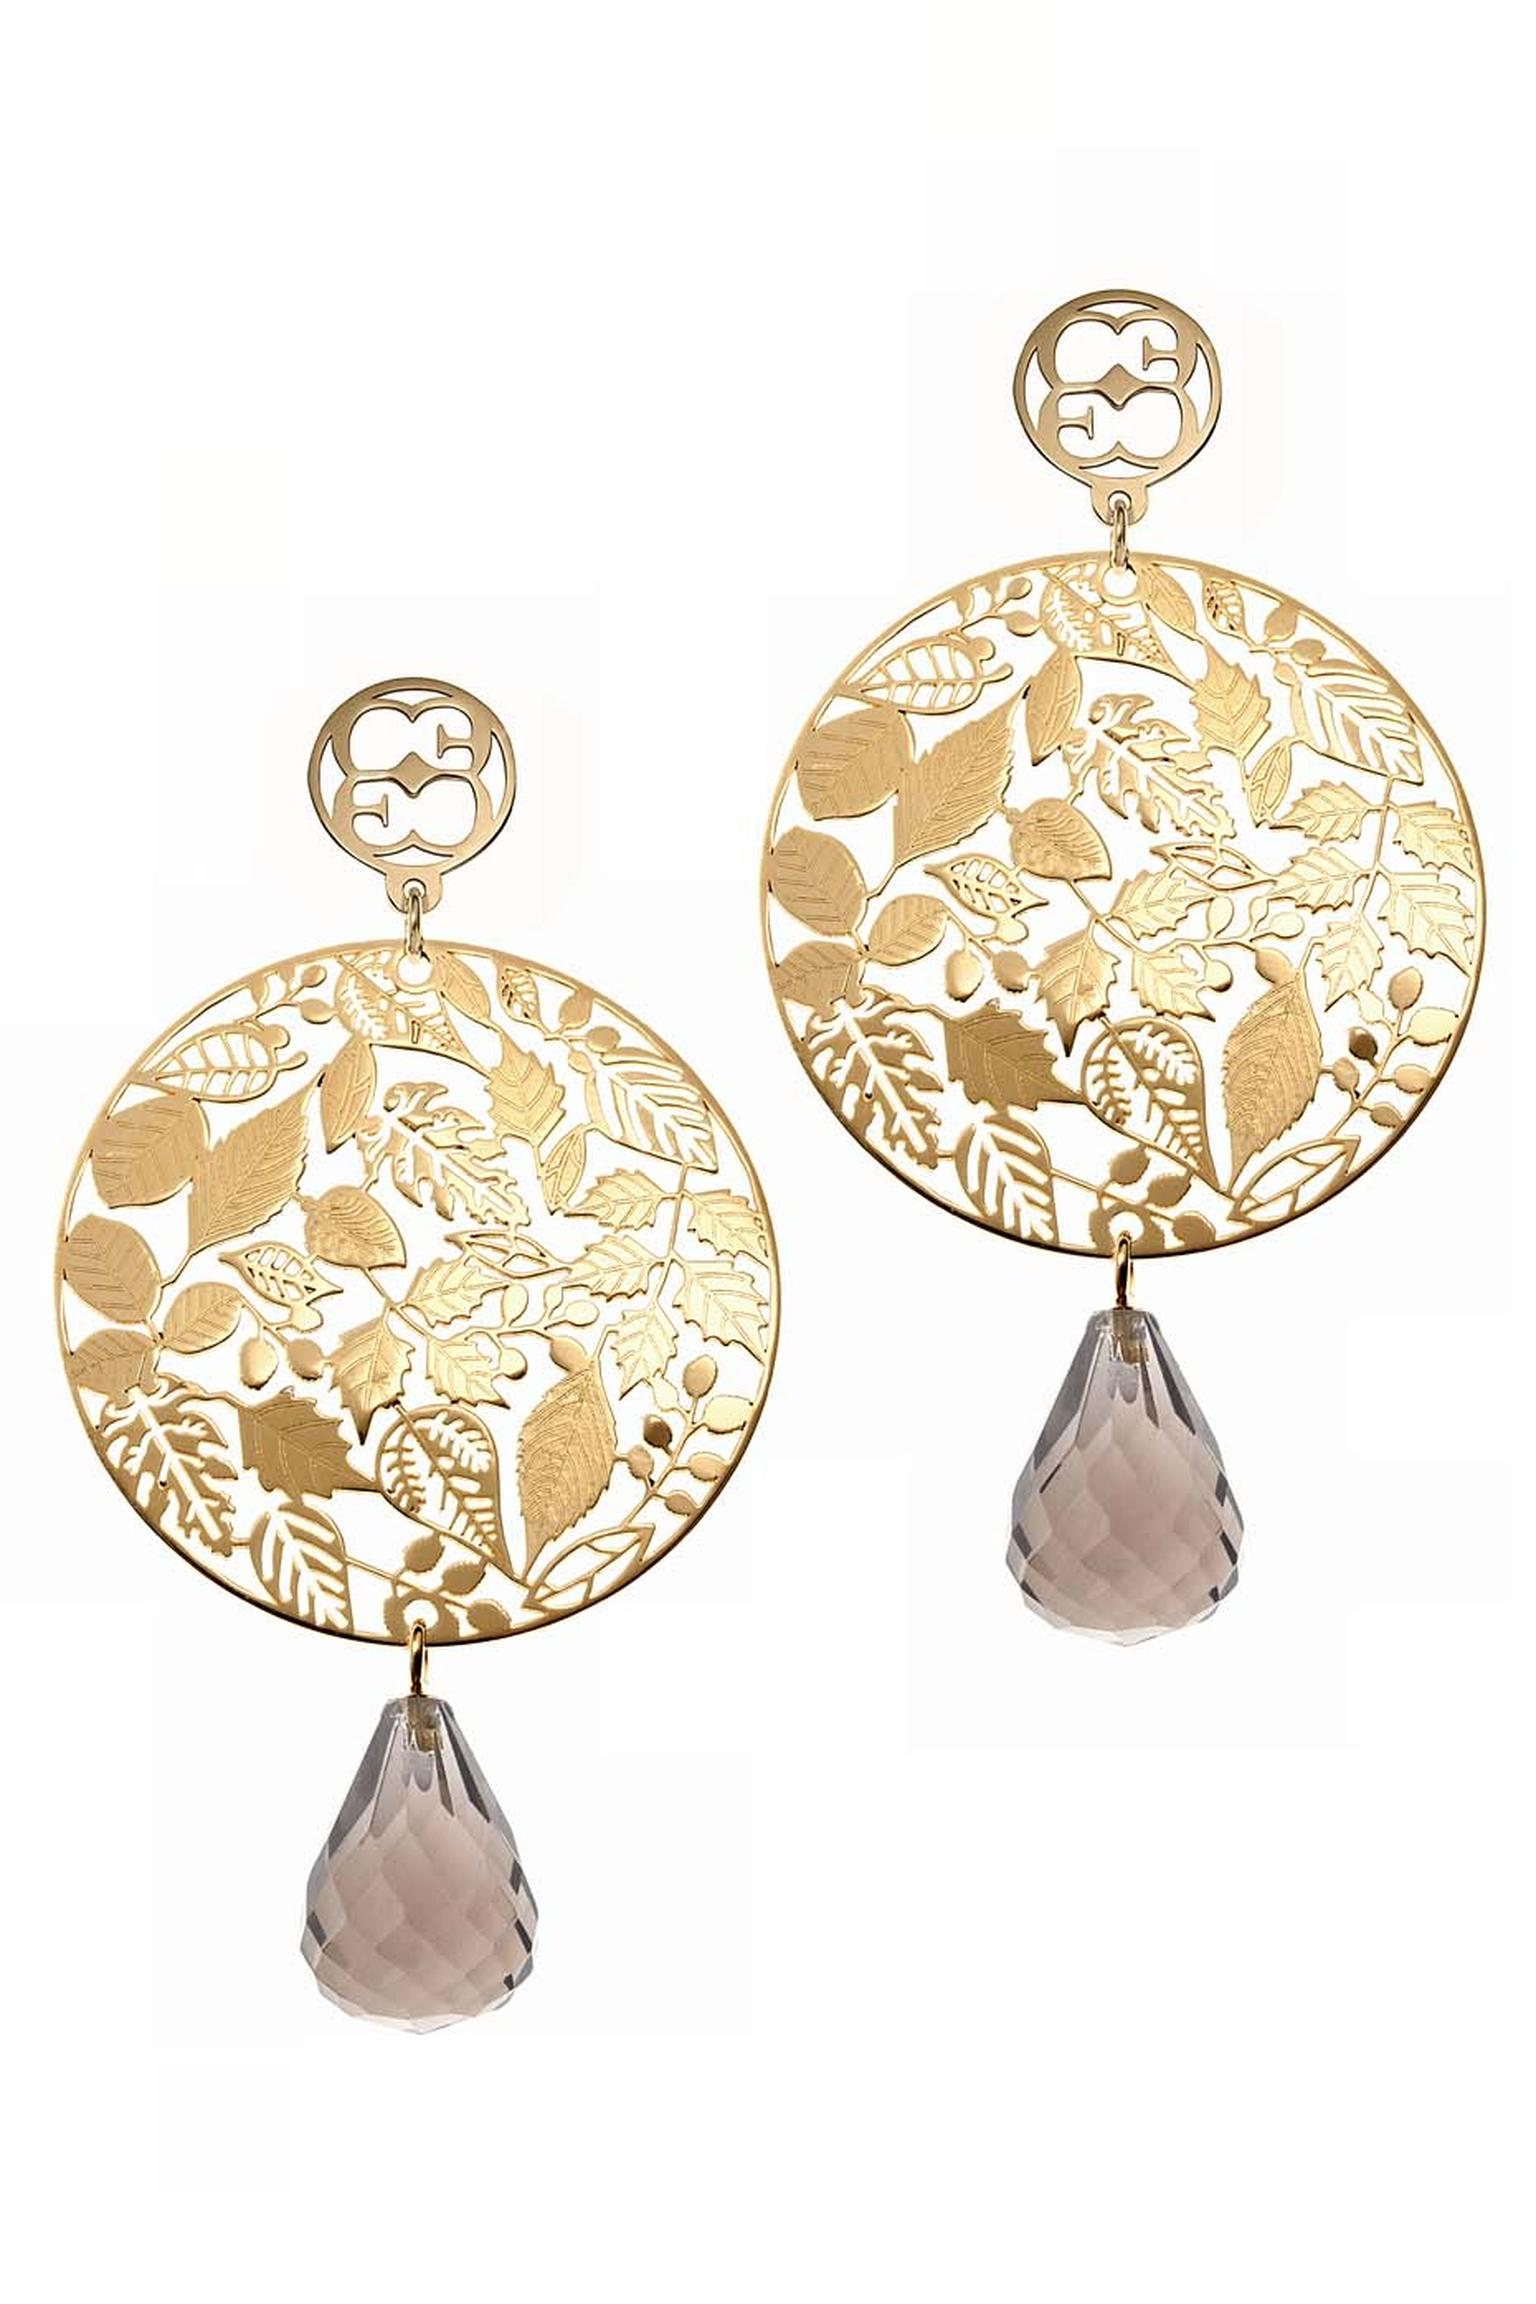 Elena C Celosías collection earrings with yellow gold-plated silver and smoky quartz (240€).